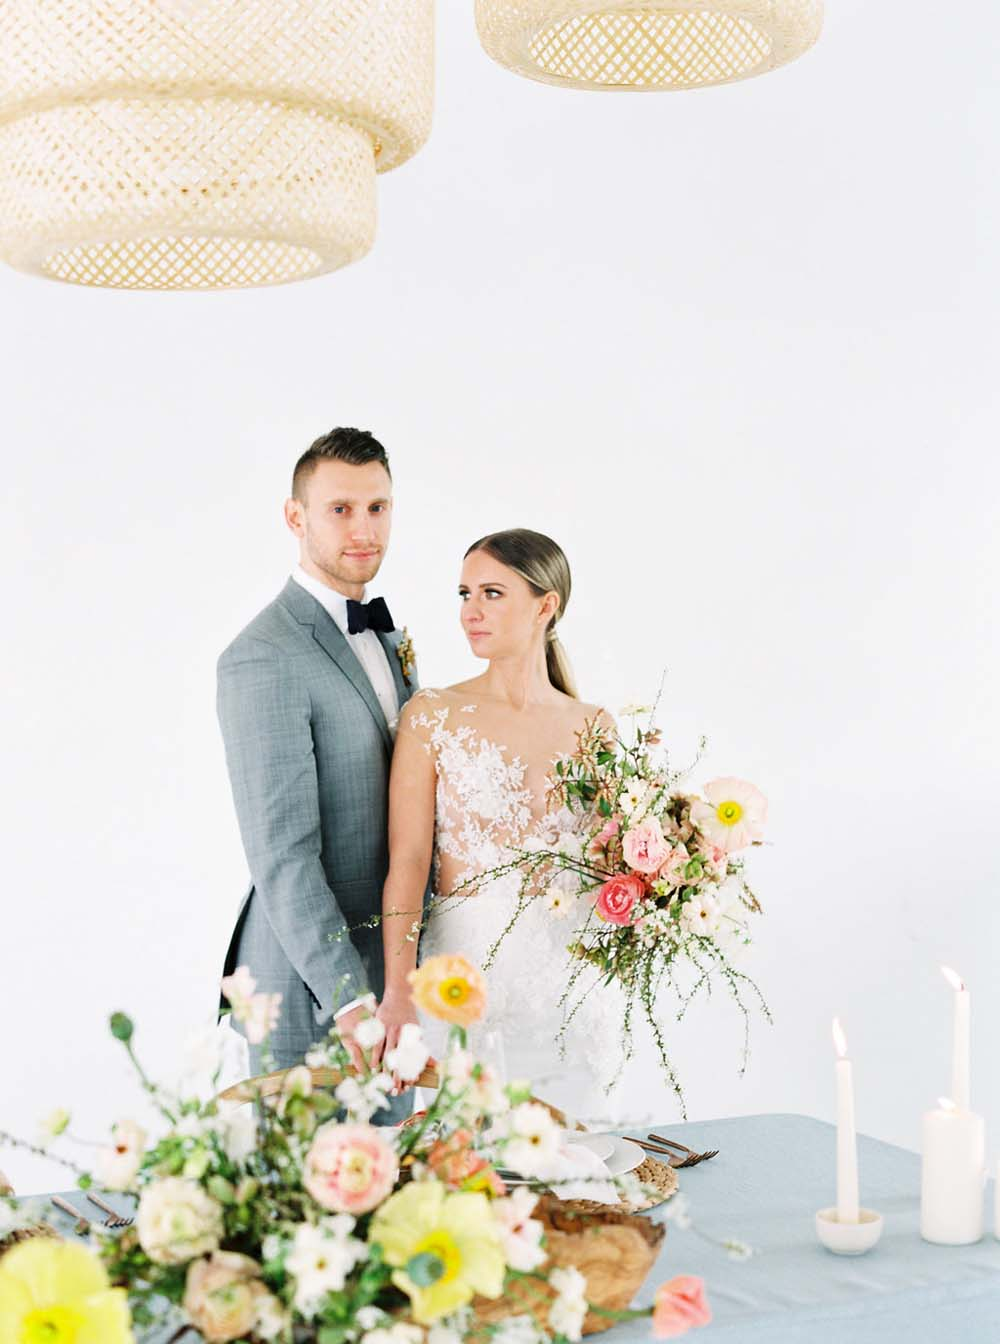 The Prettiest Inspiration For A Colourful Micro-Wedding